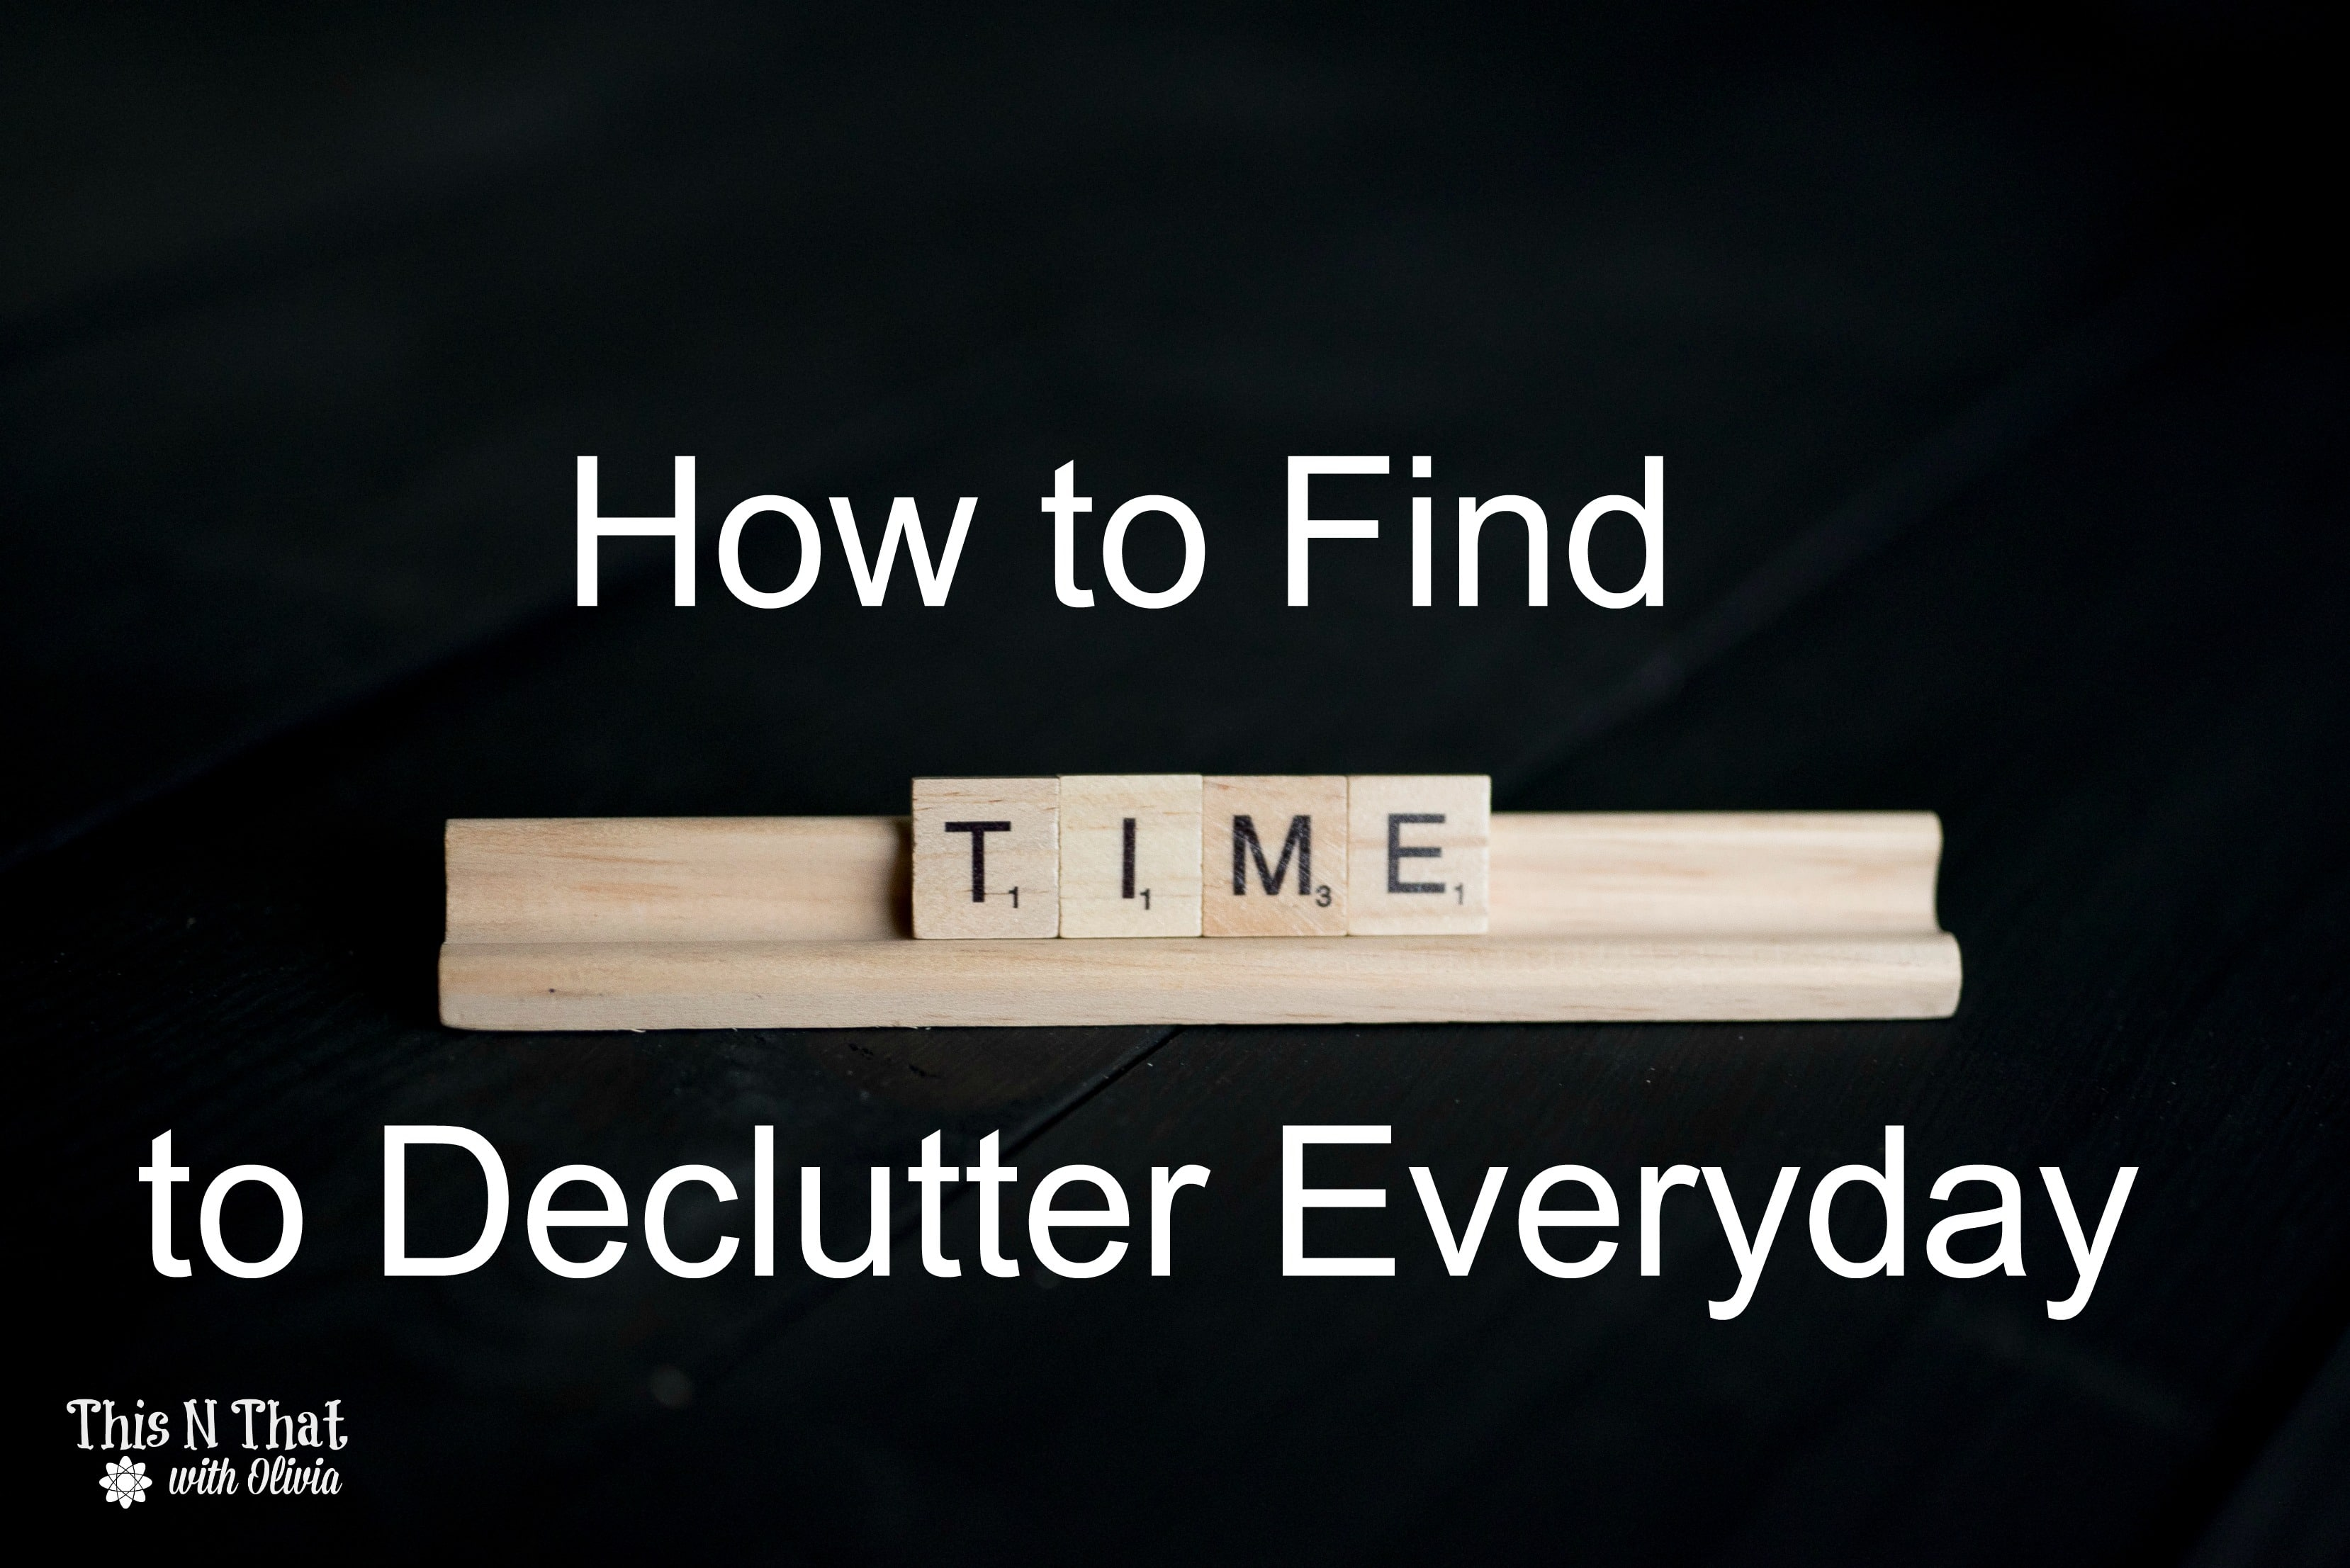 How to Find Time to Declutter Everyday